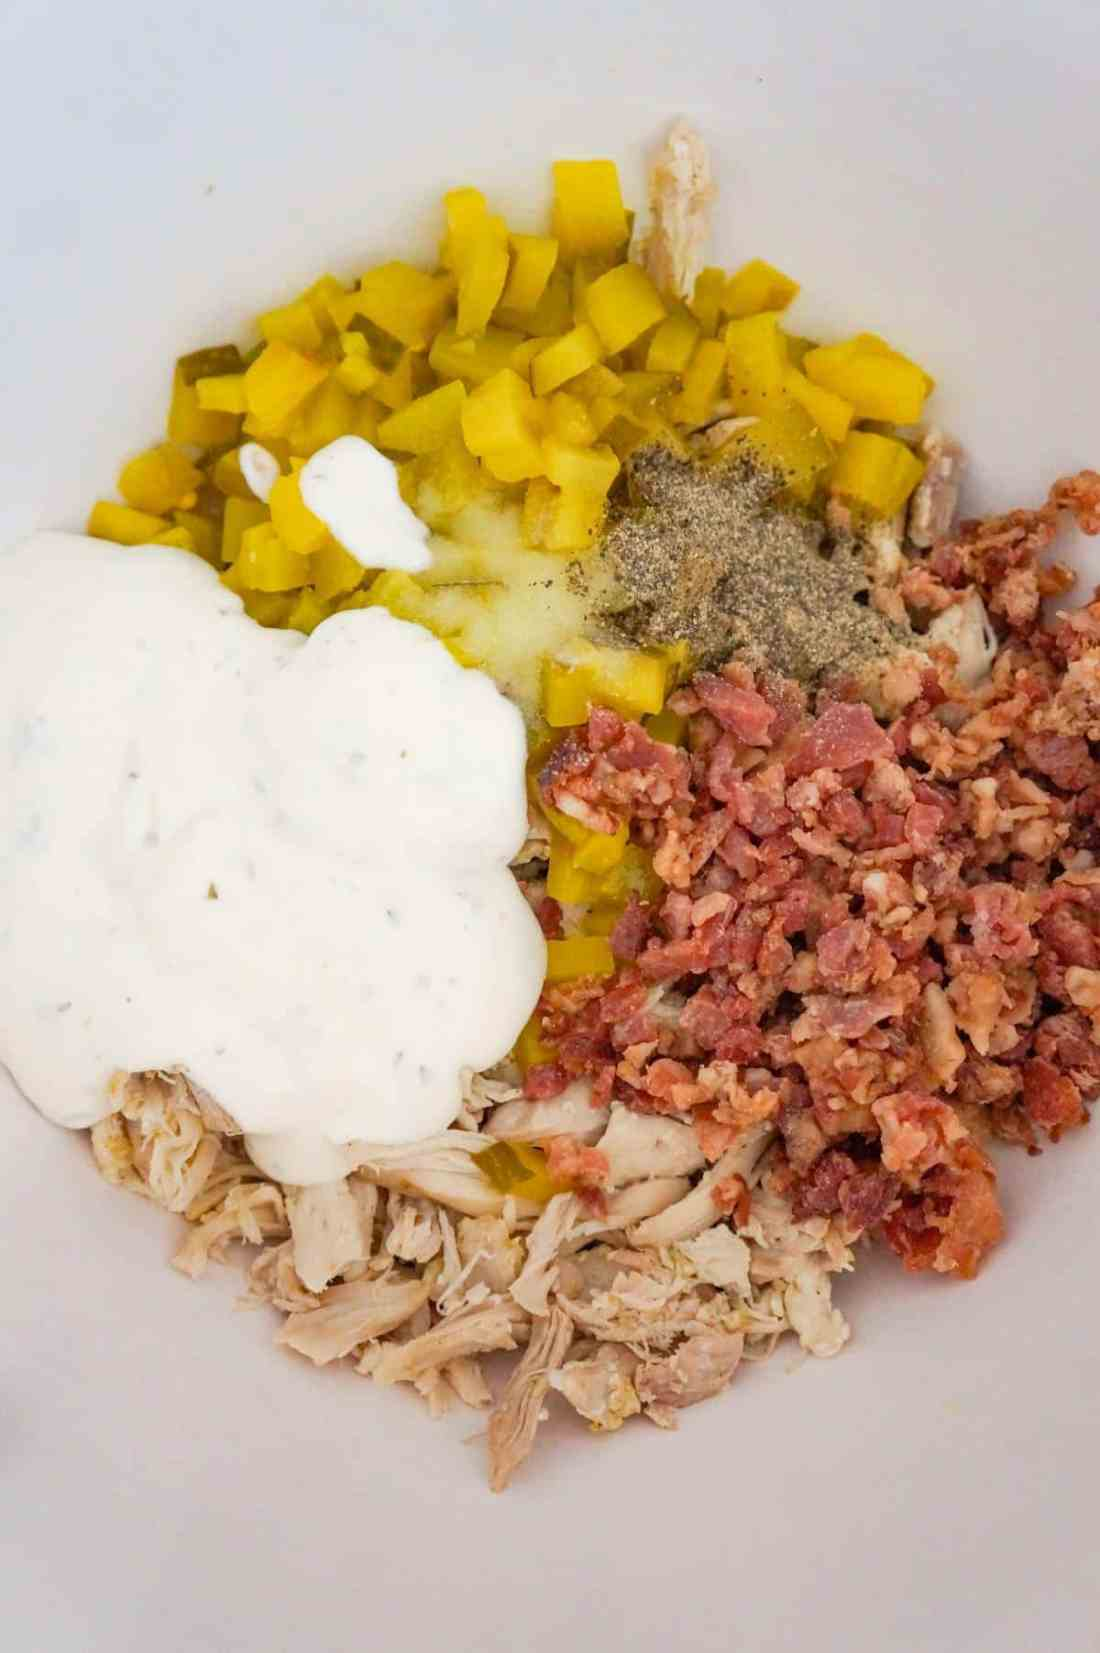 ranch dressing, shredded chicken, diced dill pickles and crumbled bacon in a mixing bowl